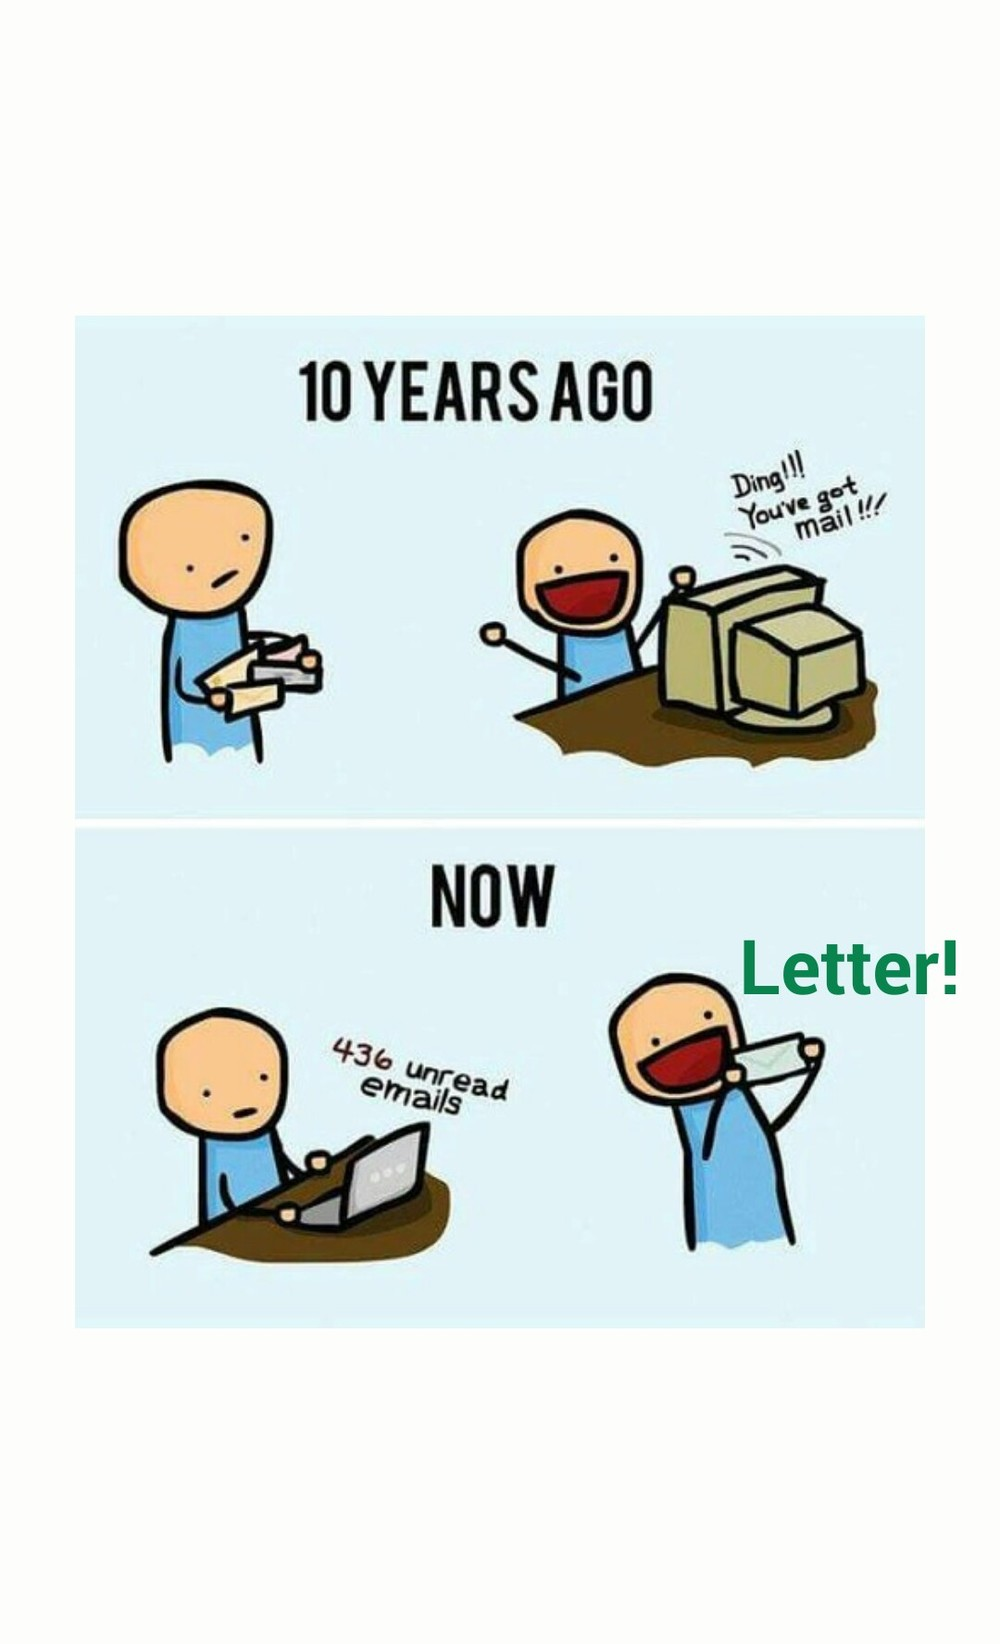 We didn't know how good we had it then.. Hehehhh ✉ x 📧 😝 Good night ! 😉 #funny #technology #funnypictures #goodnight https://plus.google.com/+AlejandroFranceschi/posts/Hw6BNx2nUeh